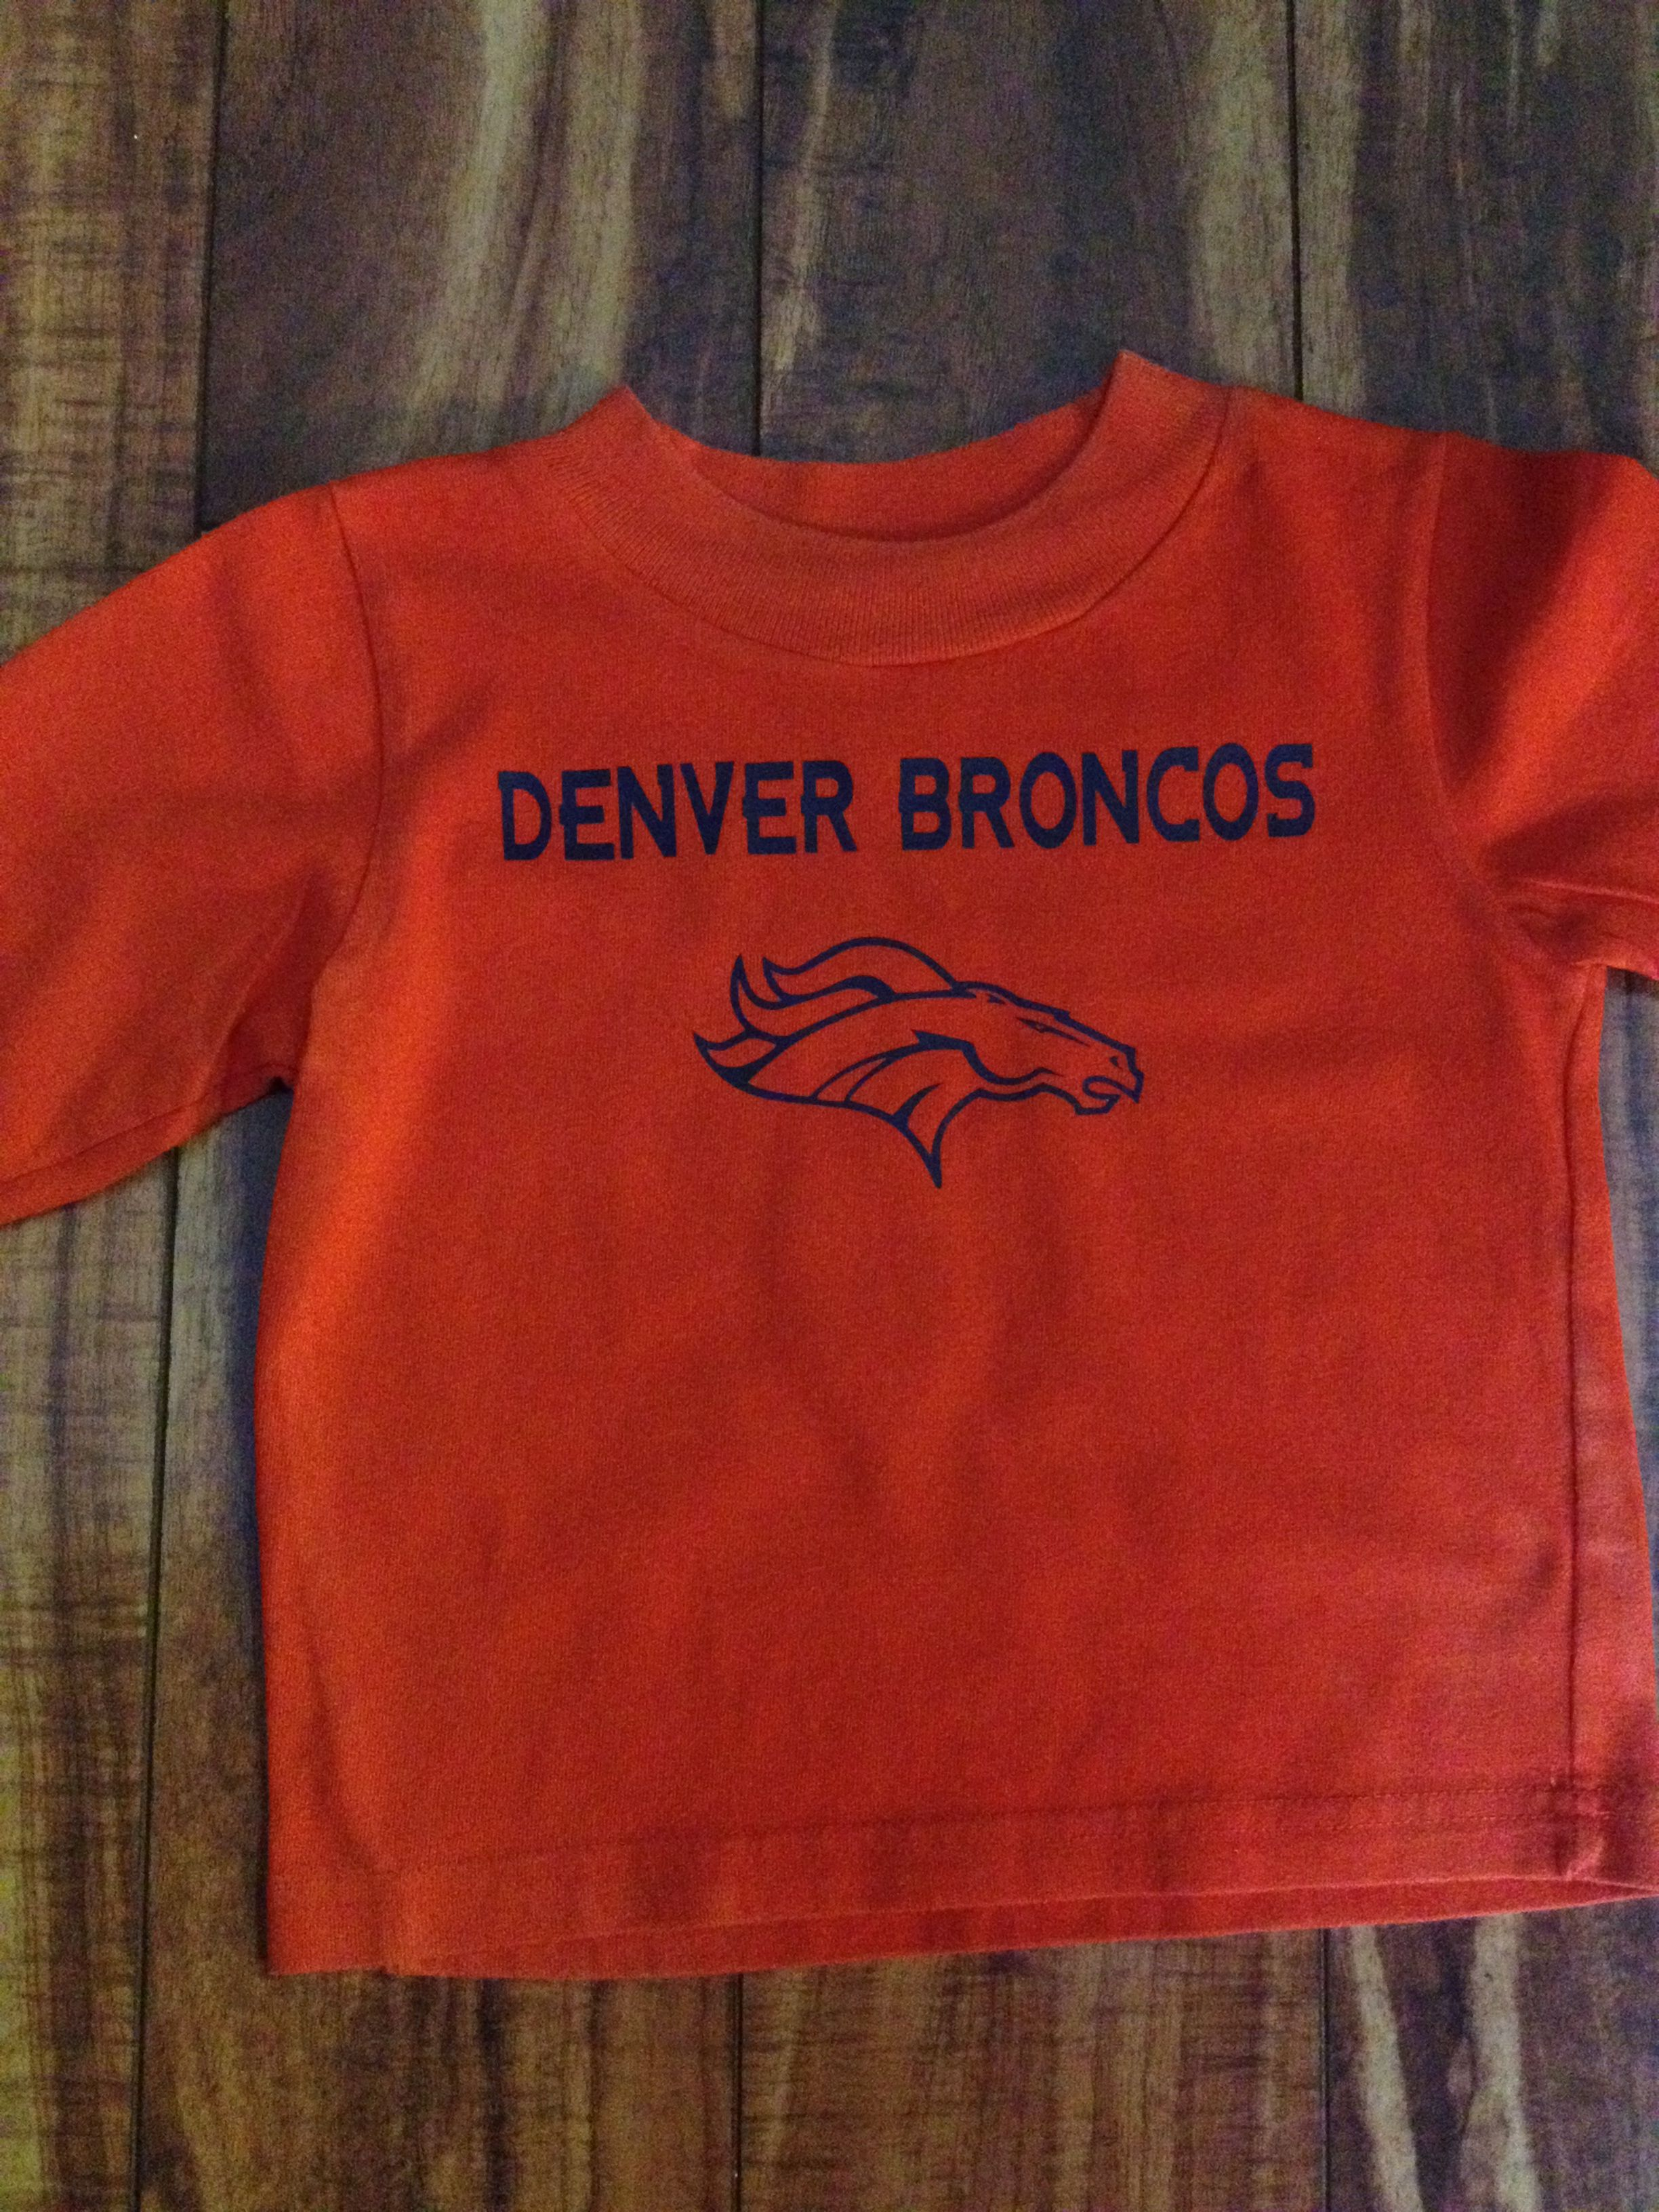 Denver Broncos Shirt My Best Friend And I Made For Her Little Boy Using The Silhouette Cameo And Siser Easyweed Heat Transf With Images Heat Transfer Vinyl Silhouette Cameo